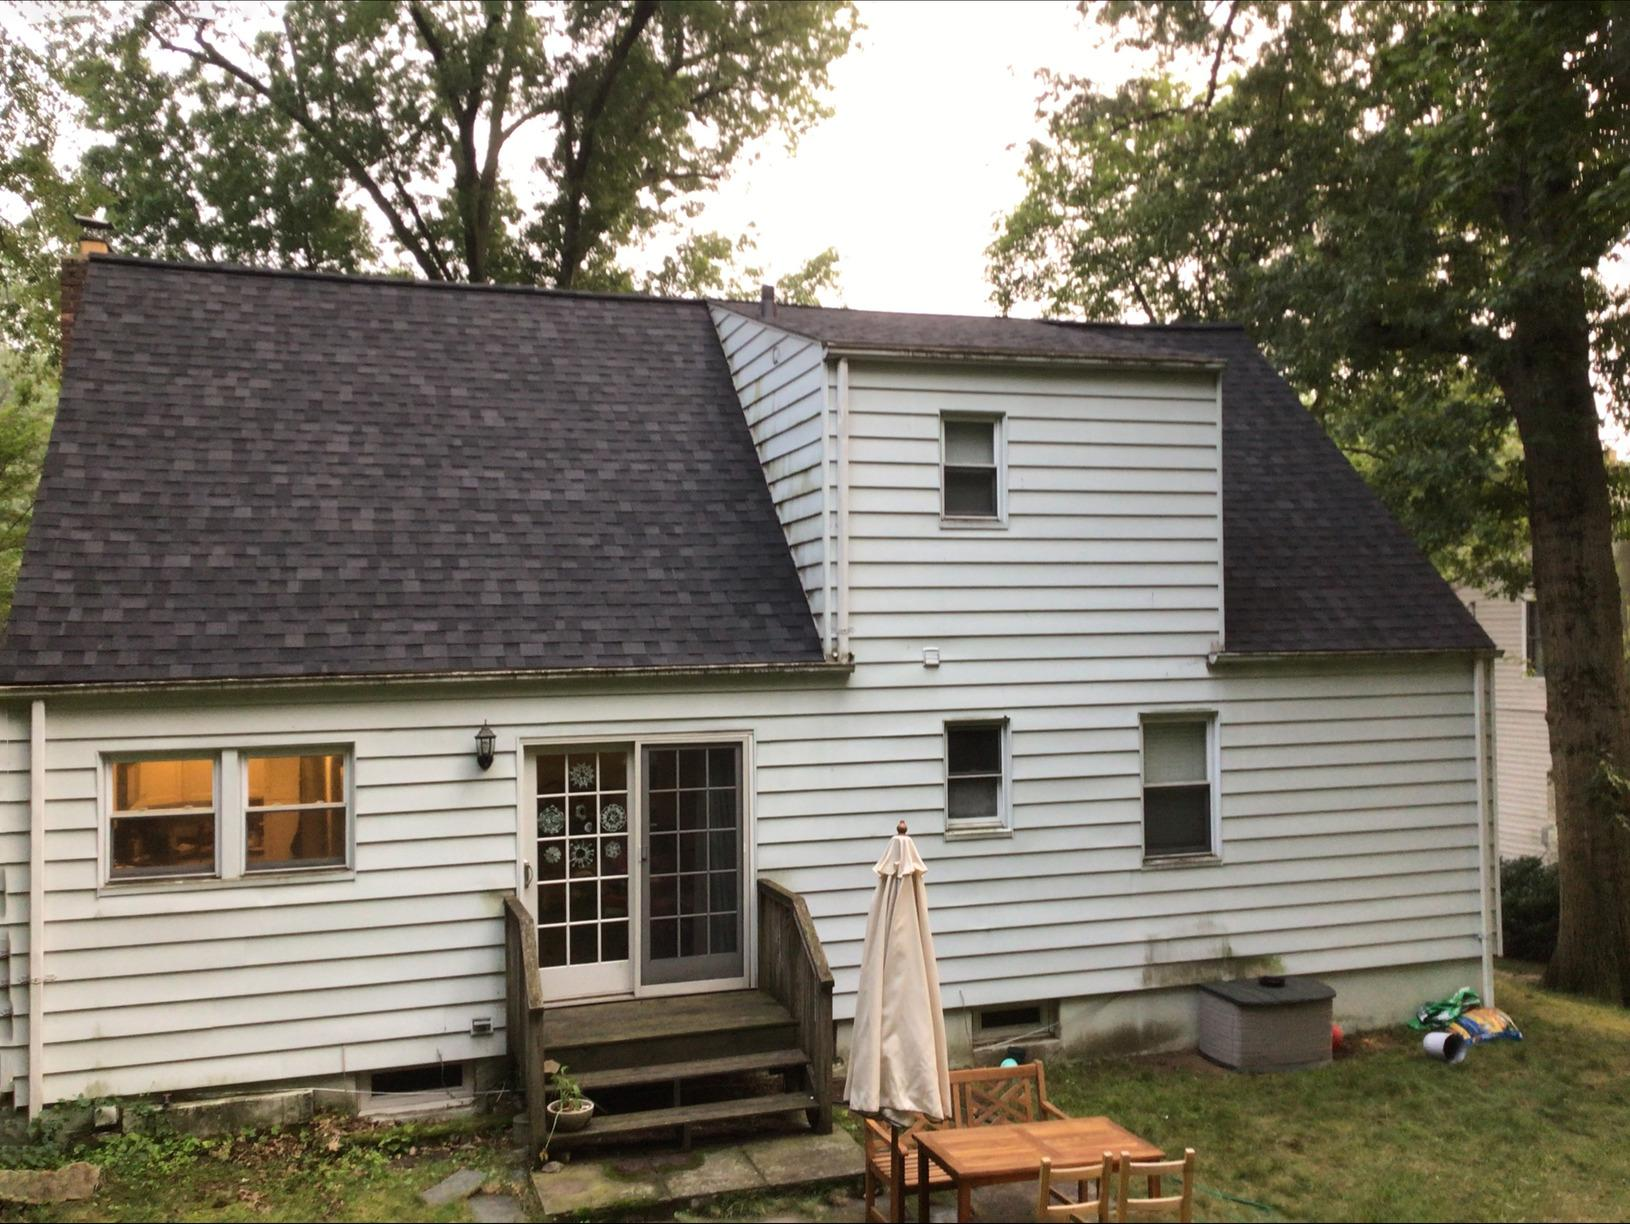 Mossy Roof Transformation in Tarrytown, NY - After Photo